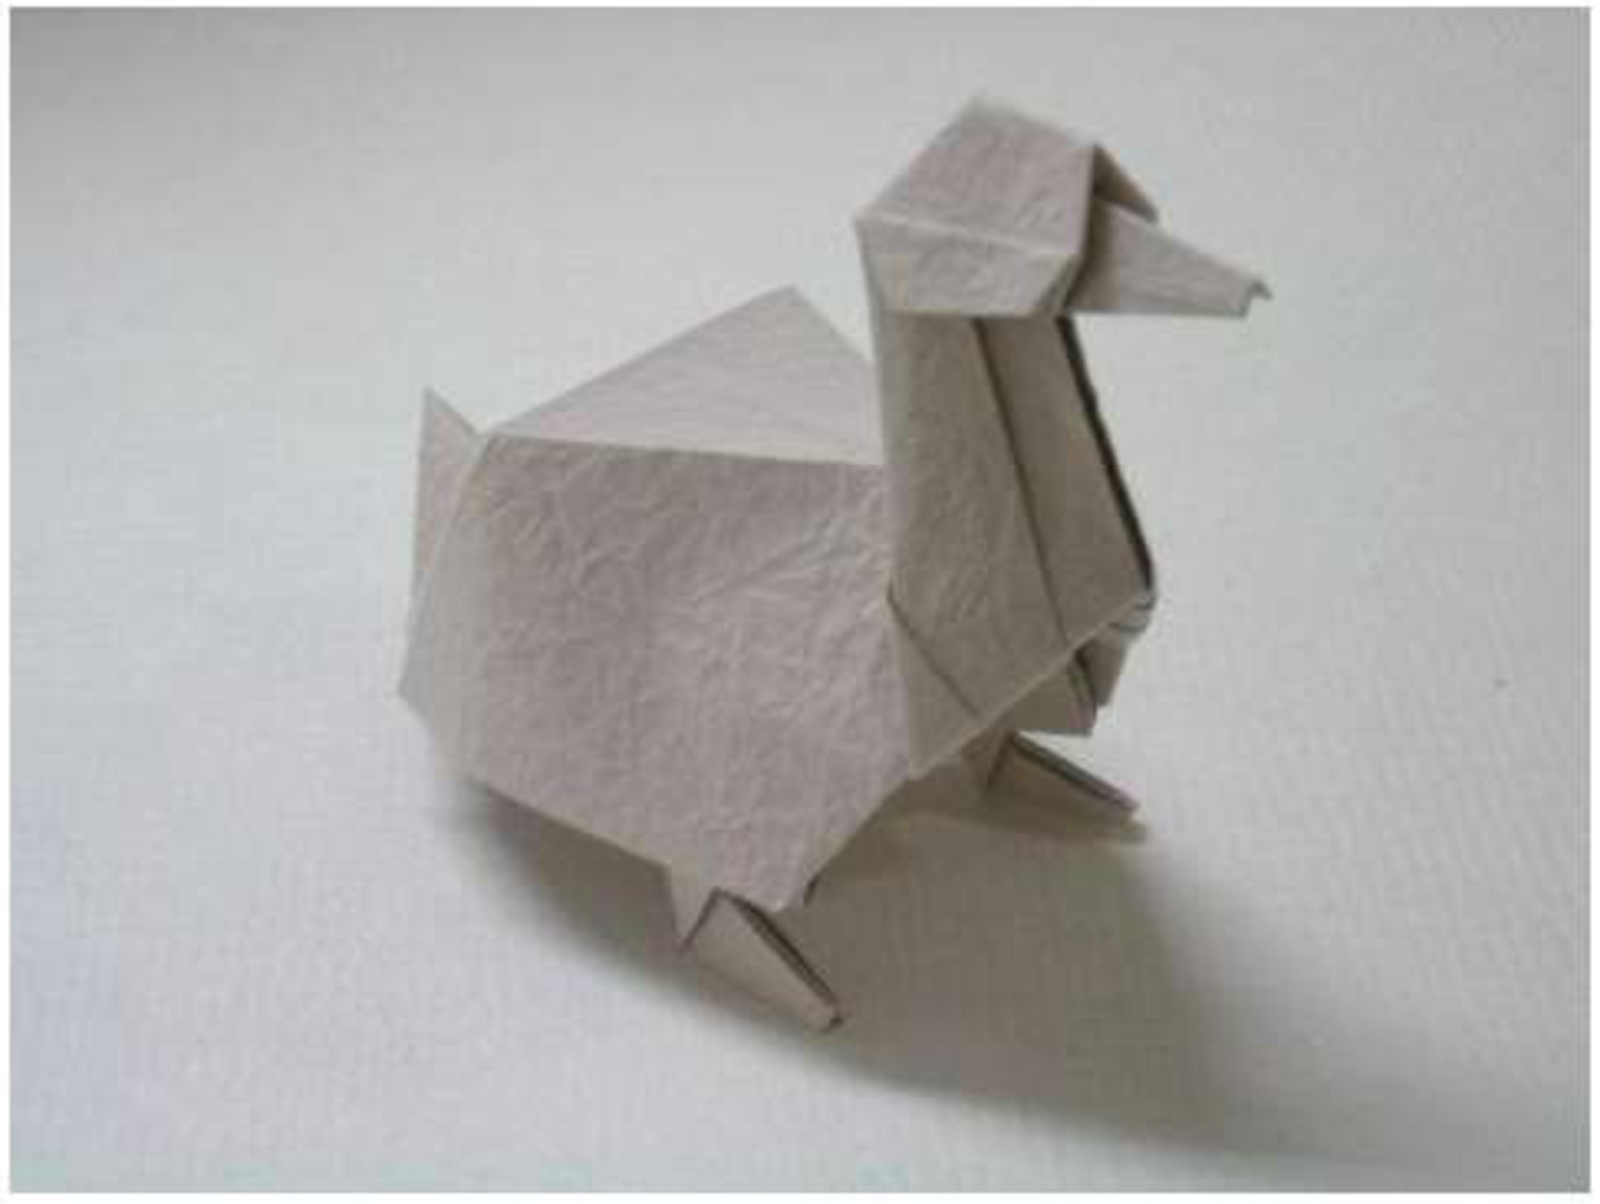 origami duck folding instructions easy paper craft for kids